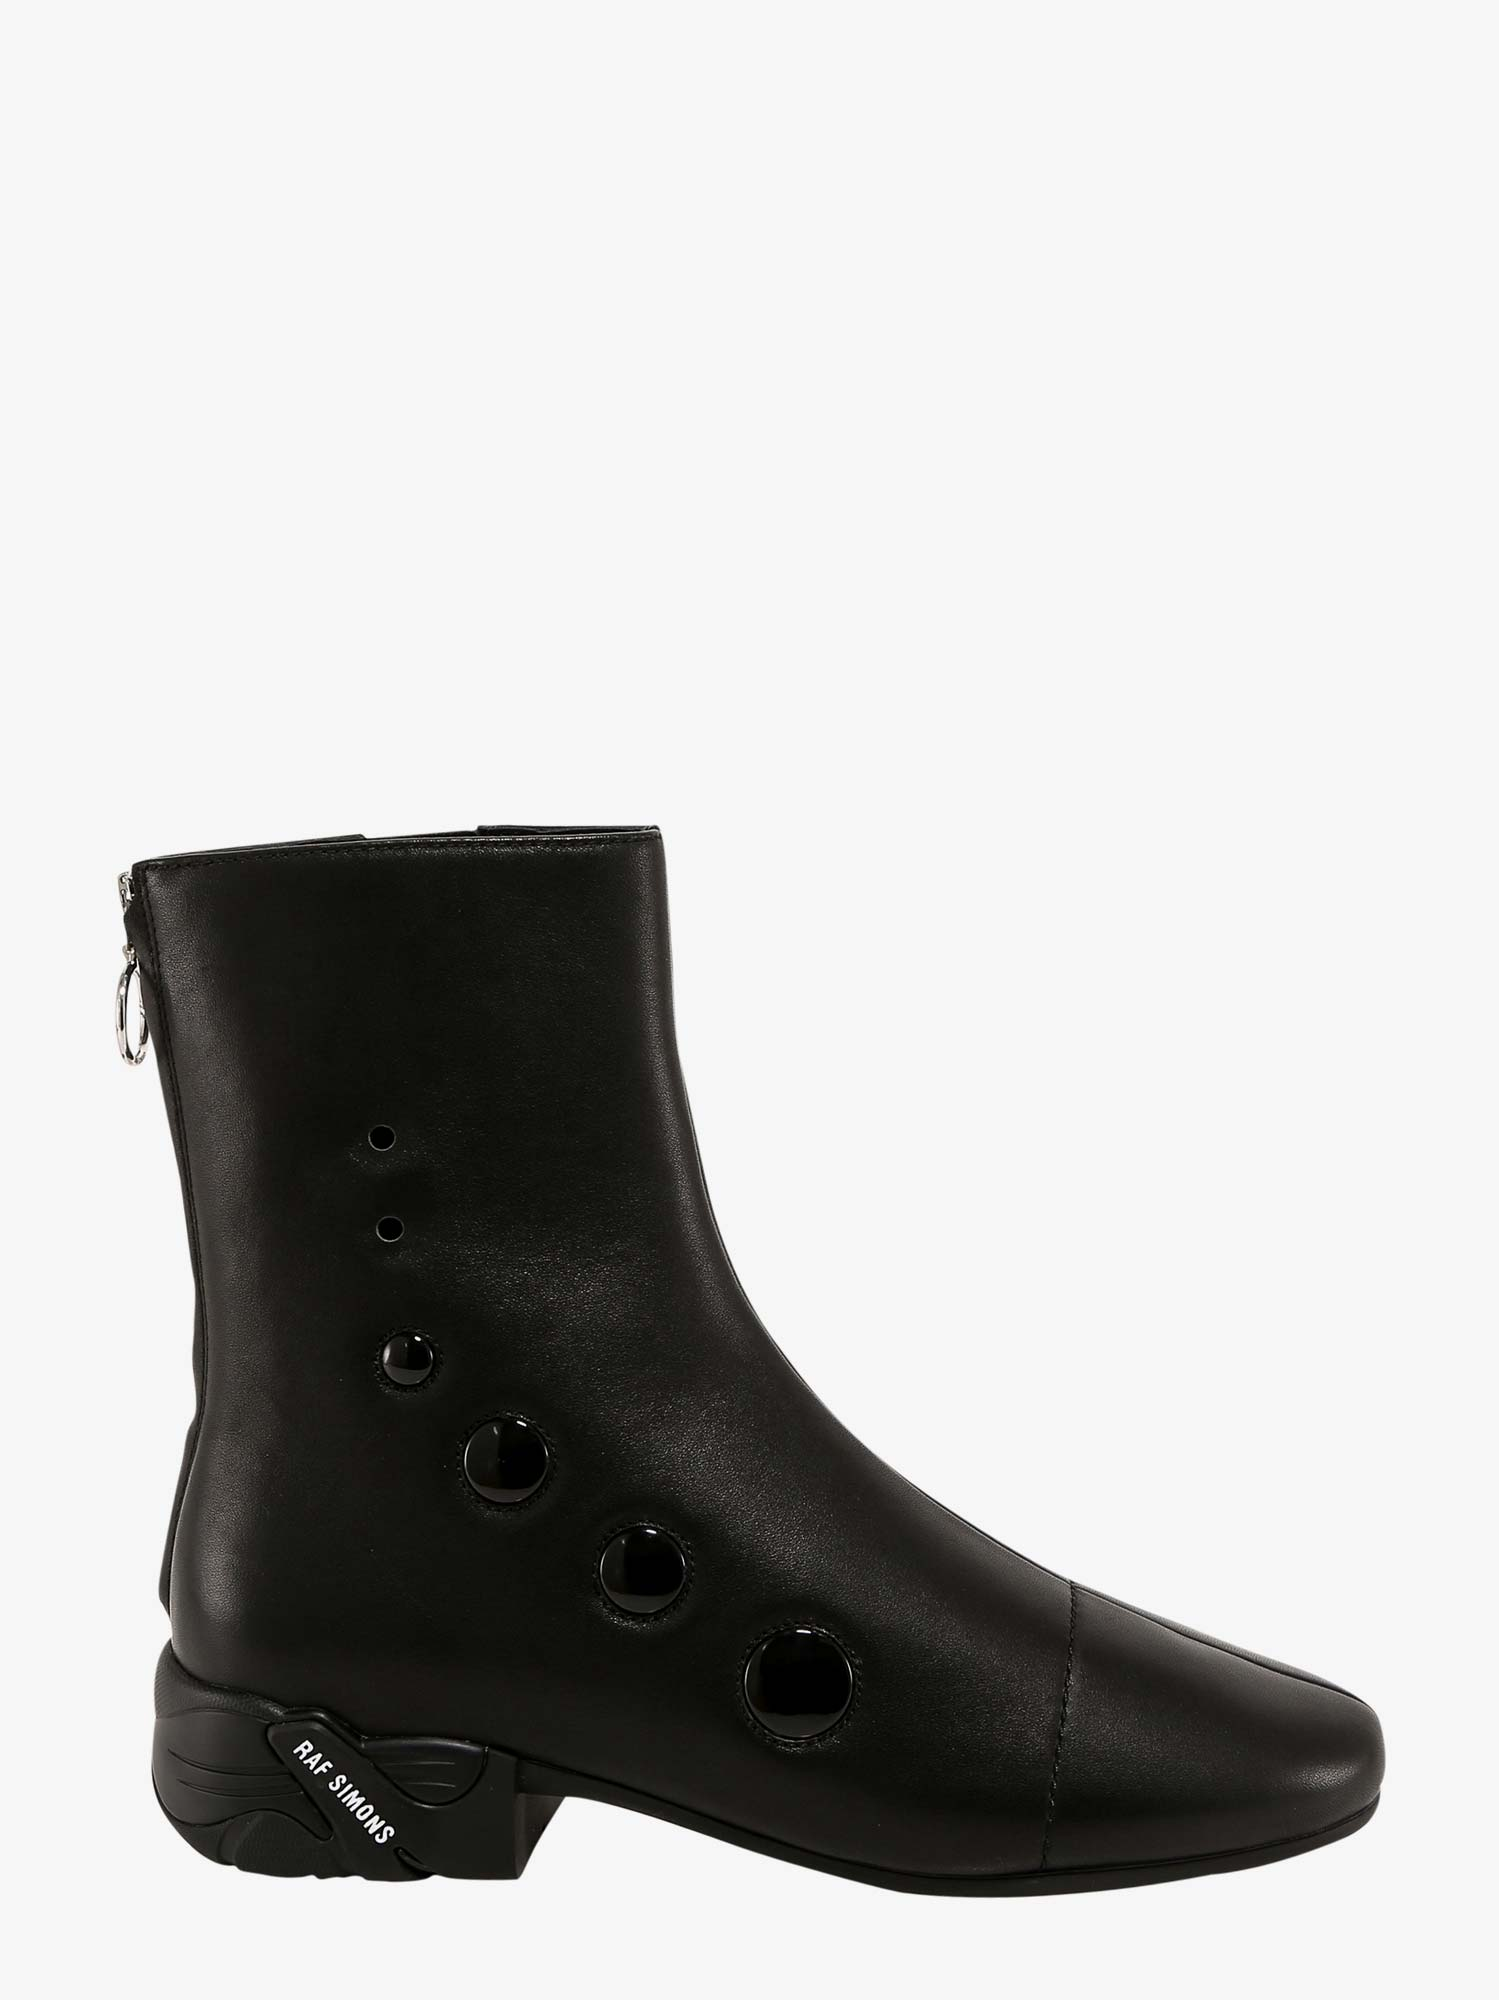 ANKLE BOOTS – RAF SIMONS – MAN